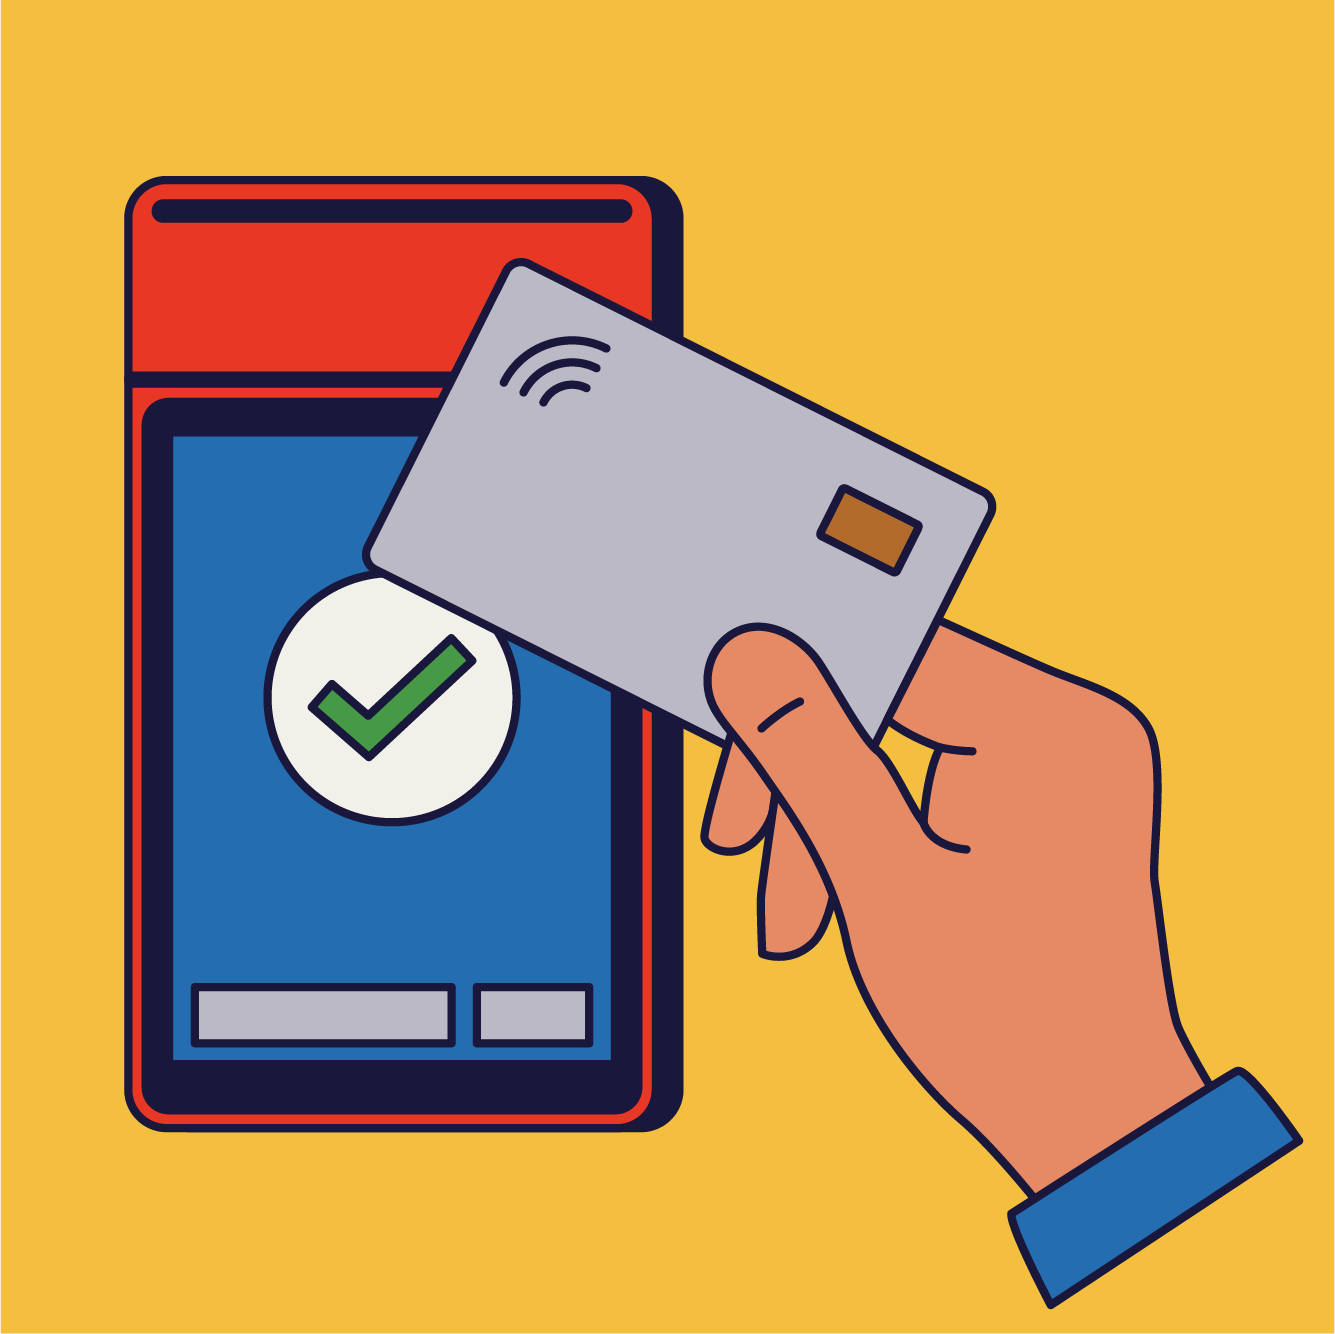 mPos: Everything you need - in the palm of your hand